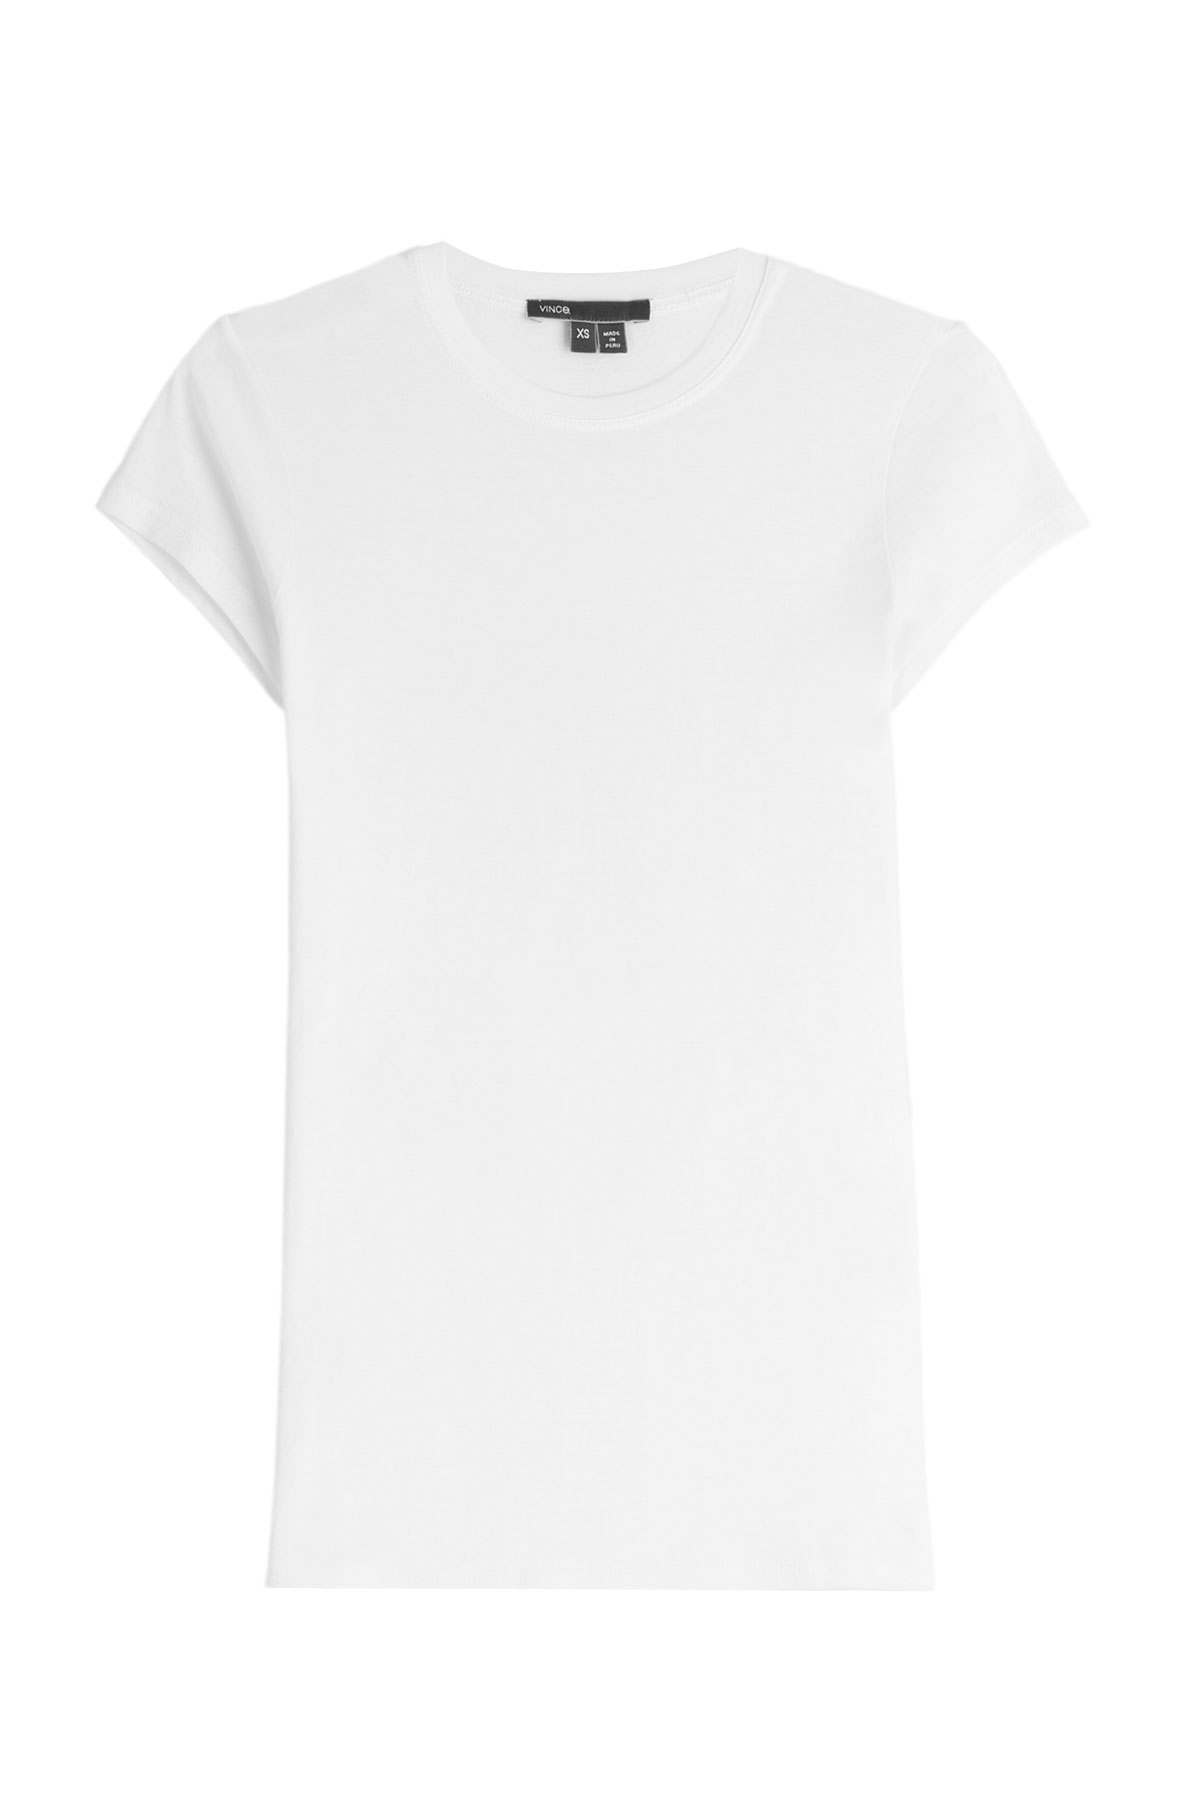 good-white-tshirt-vince  Alternative Summer Styles for 2016 good white tshirt vince